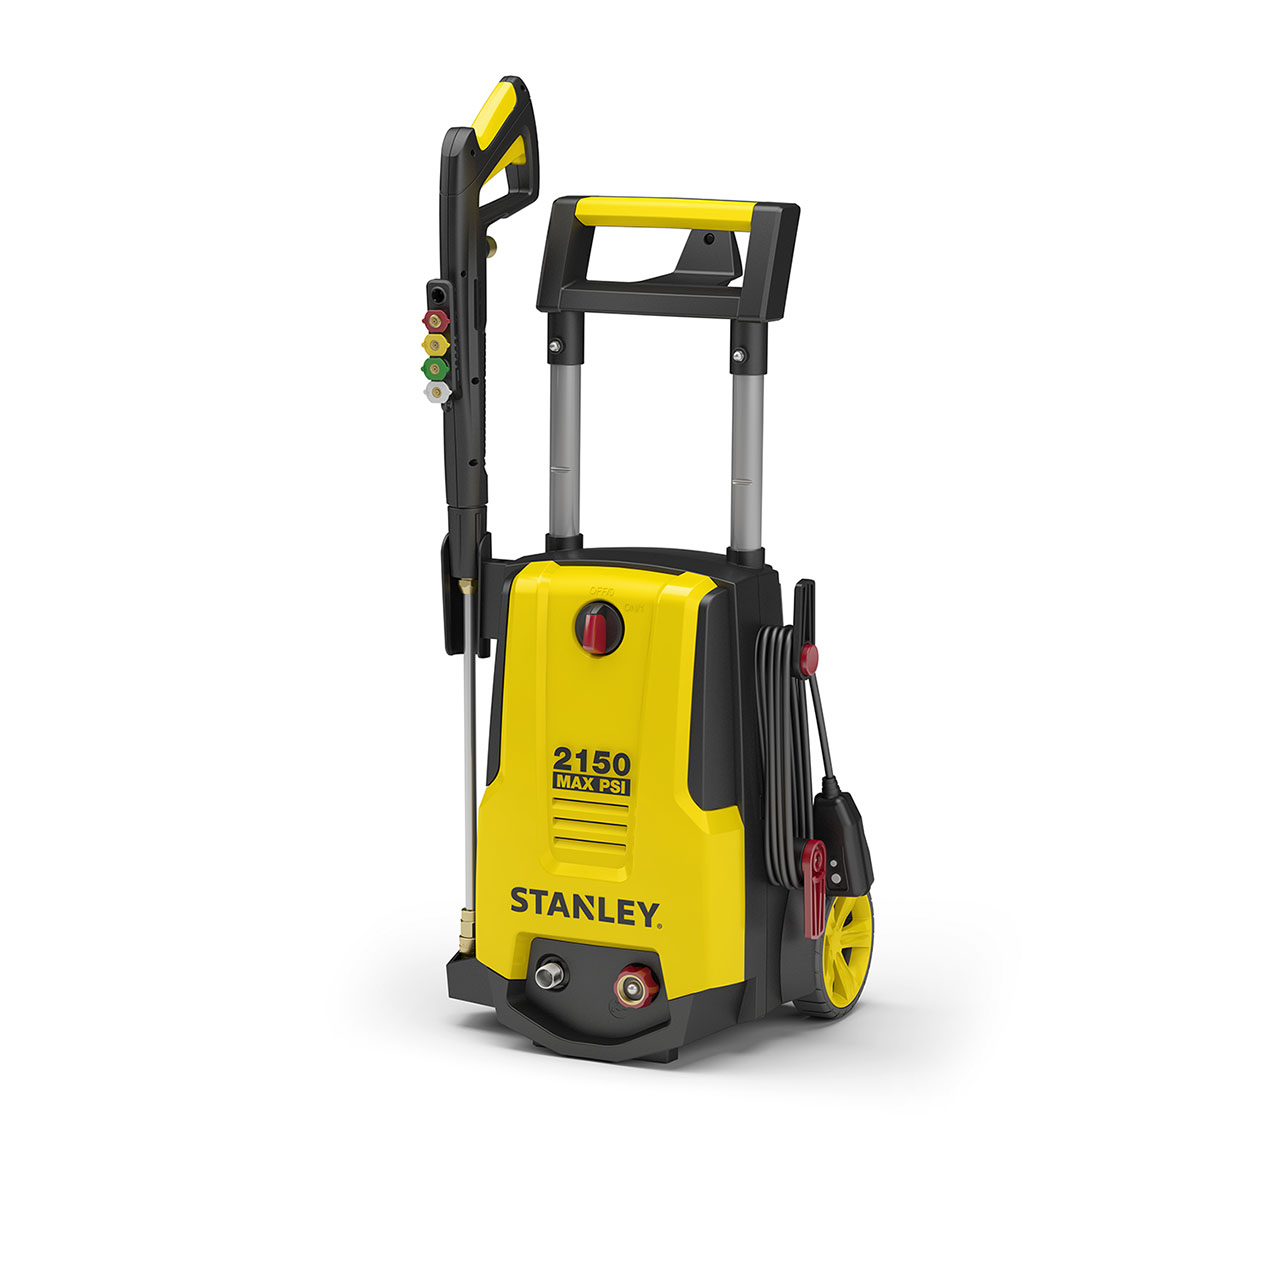 Stanley SHP2150 PSI Electric Pressure Washer with Spray Gun, Wand, Hose, Nozzles & High Pressure Foam Cannon (Yellow)